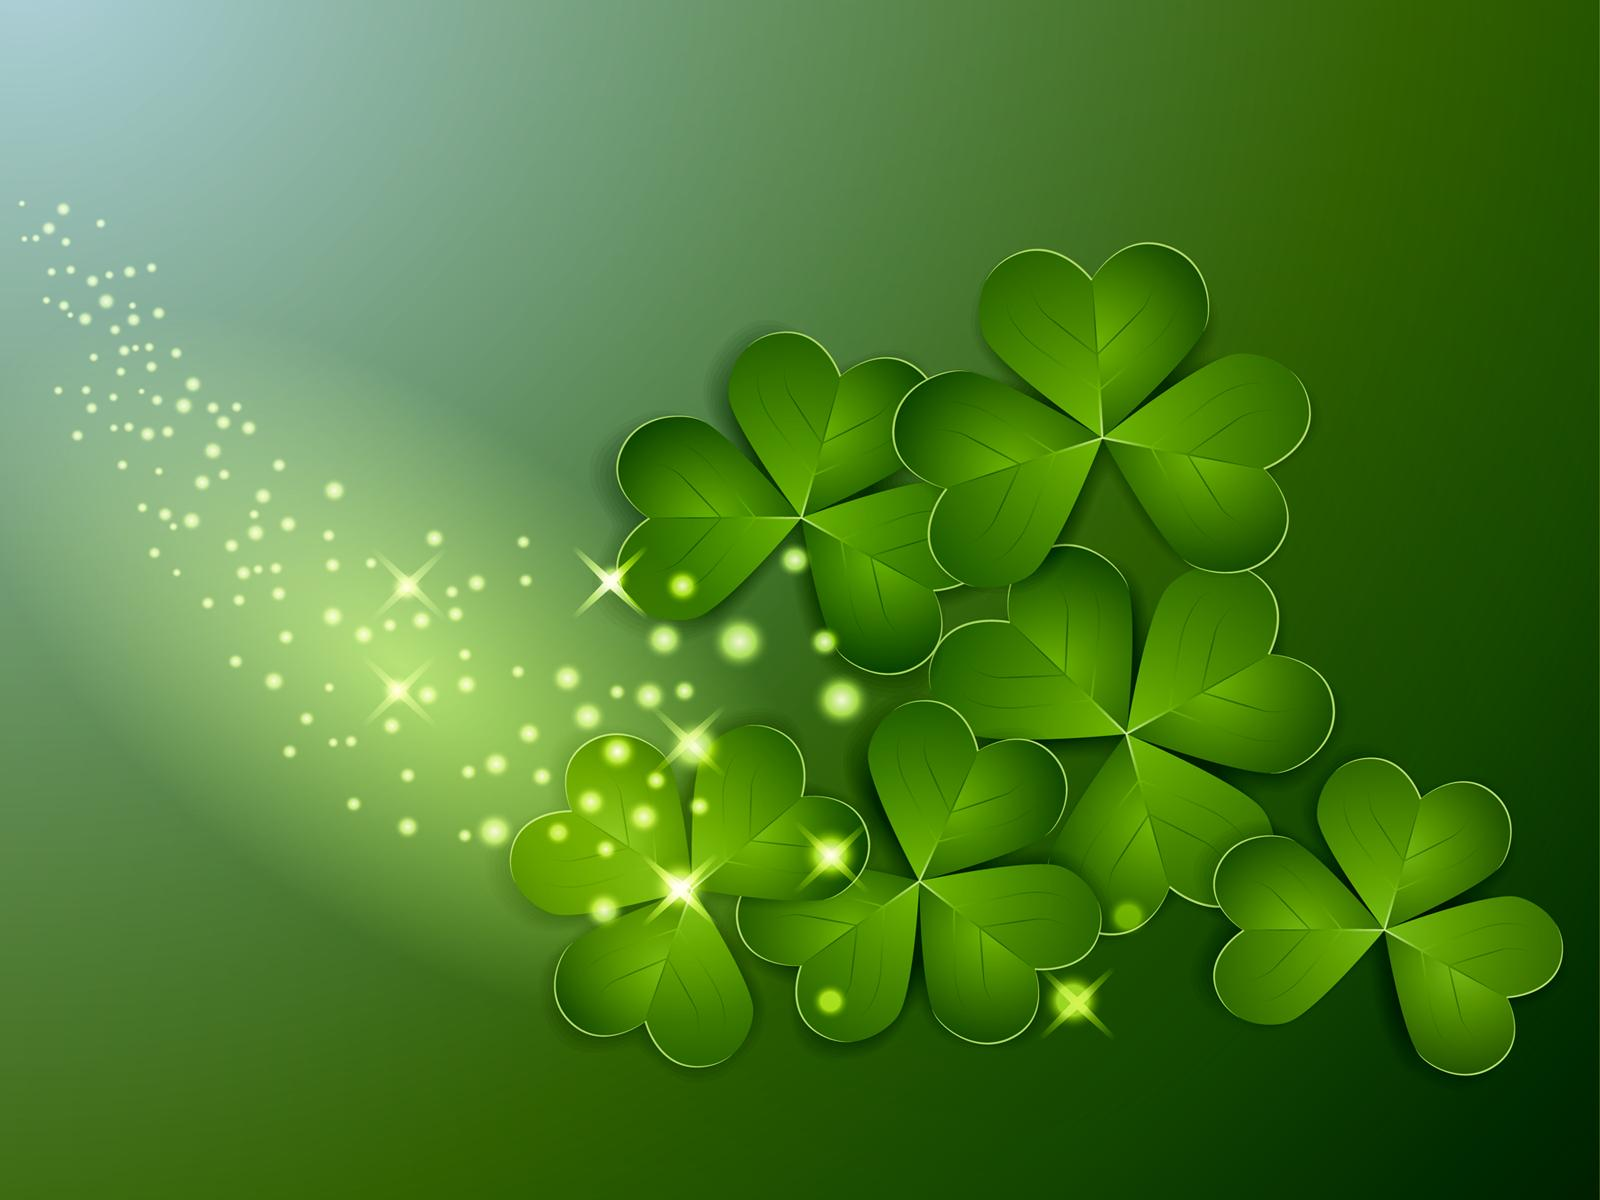 happy saint patrics day desktop facebook cover photos download